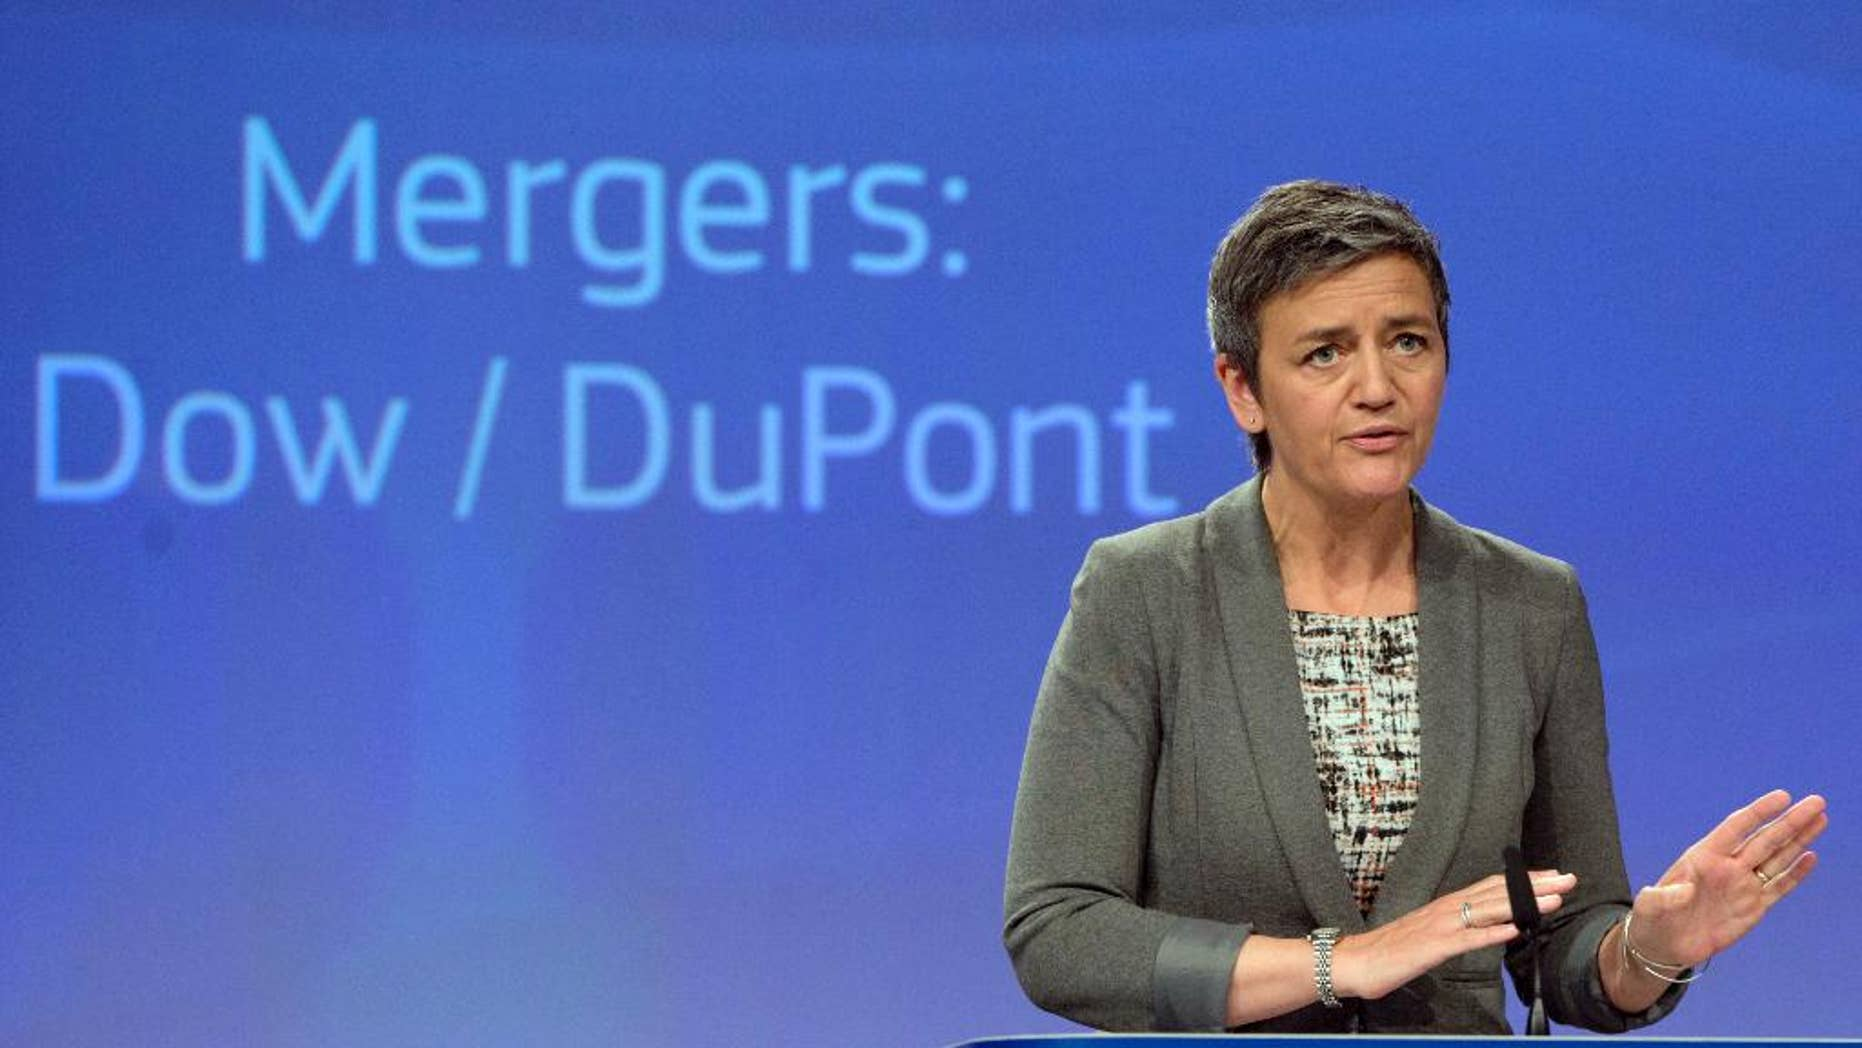 European Commissioner for Competition Margrethe Vestager speaks during a media conference at EU headquarters in Brussels on Monday, March 27, 2017. The European Union has approved the proposed merger of Dow Chemical and Du Pont, saying that the companies' commitments to divest businesses have addressed its concerns. (AP Photo/Virginia Mayo)